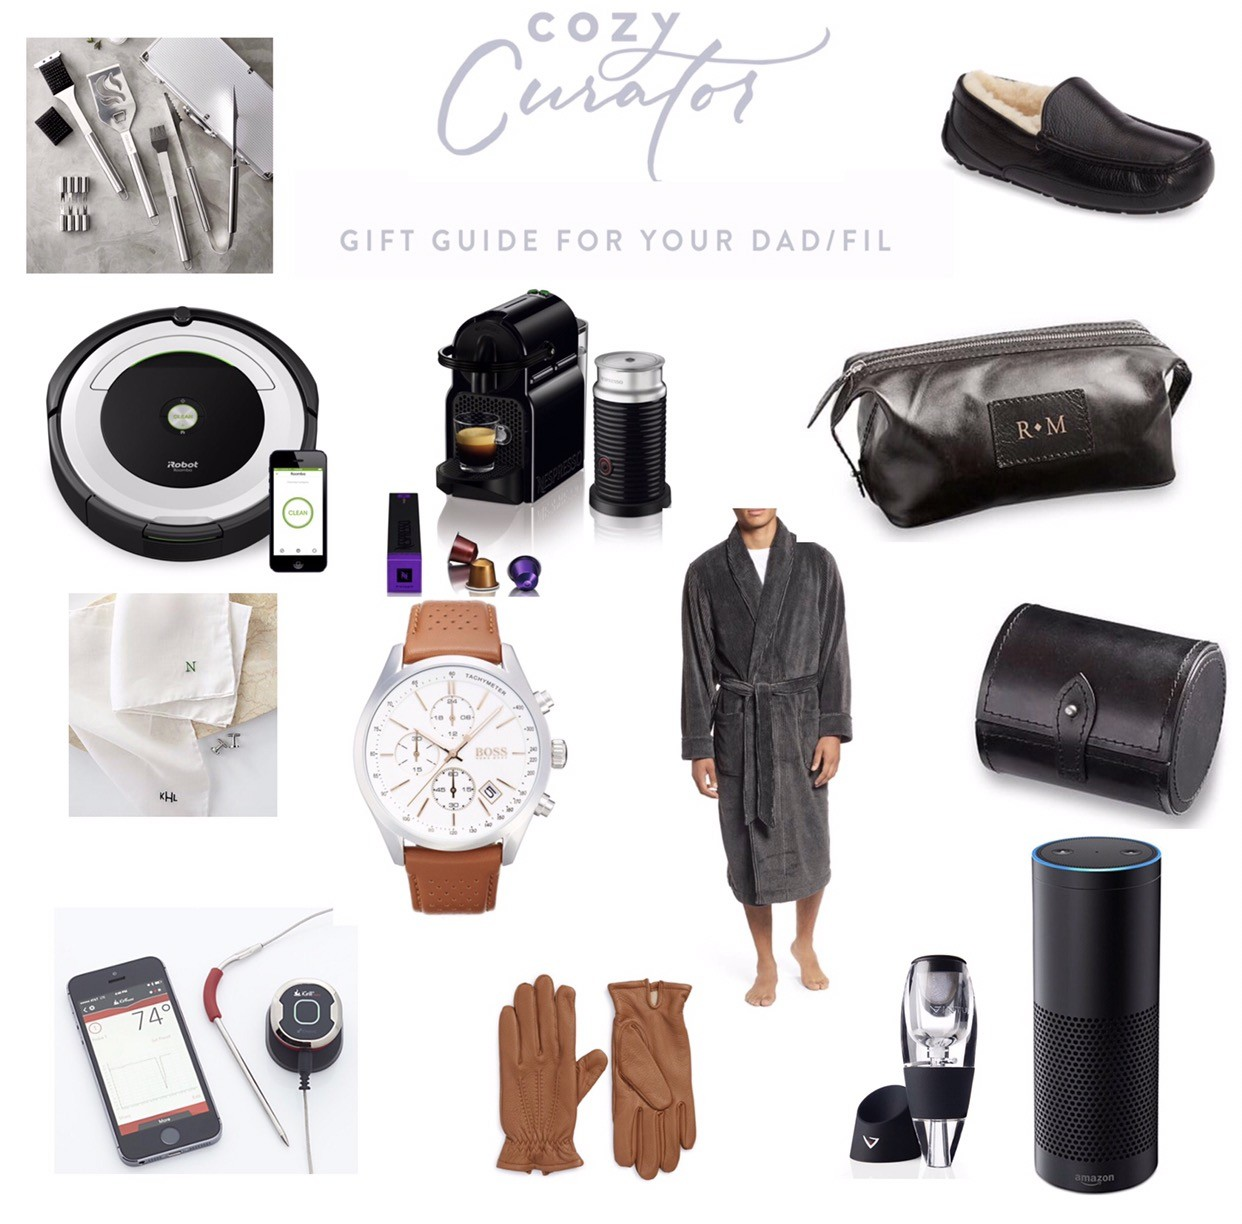 Gift Guide For Your Father Father In Law The Cozy Curator